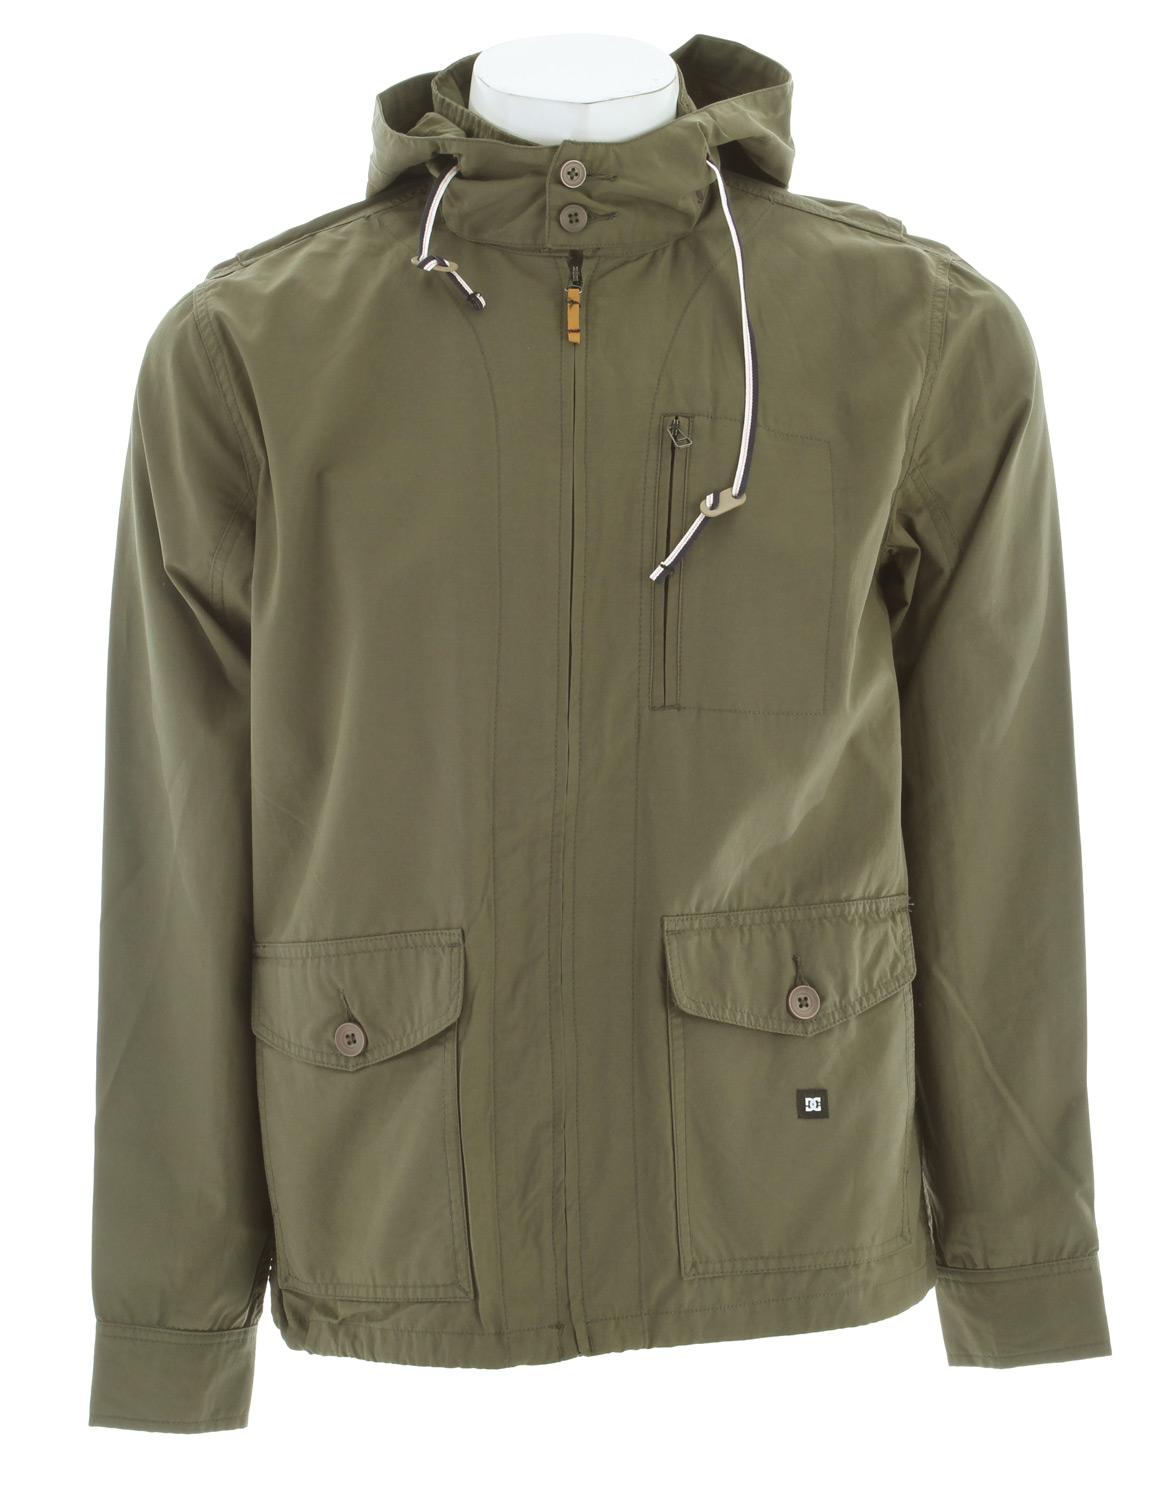 DC Allegiance Jacket Dusty Olive - $41.95